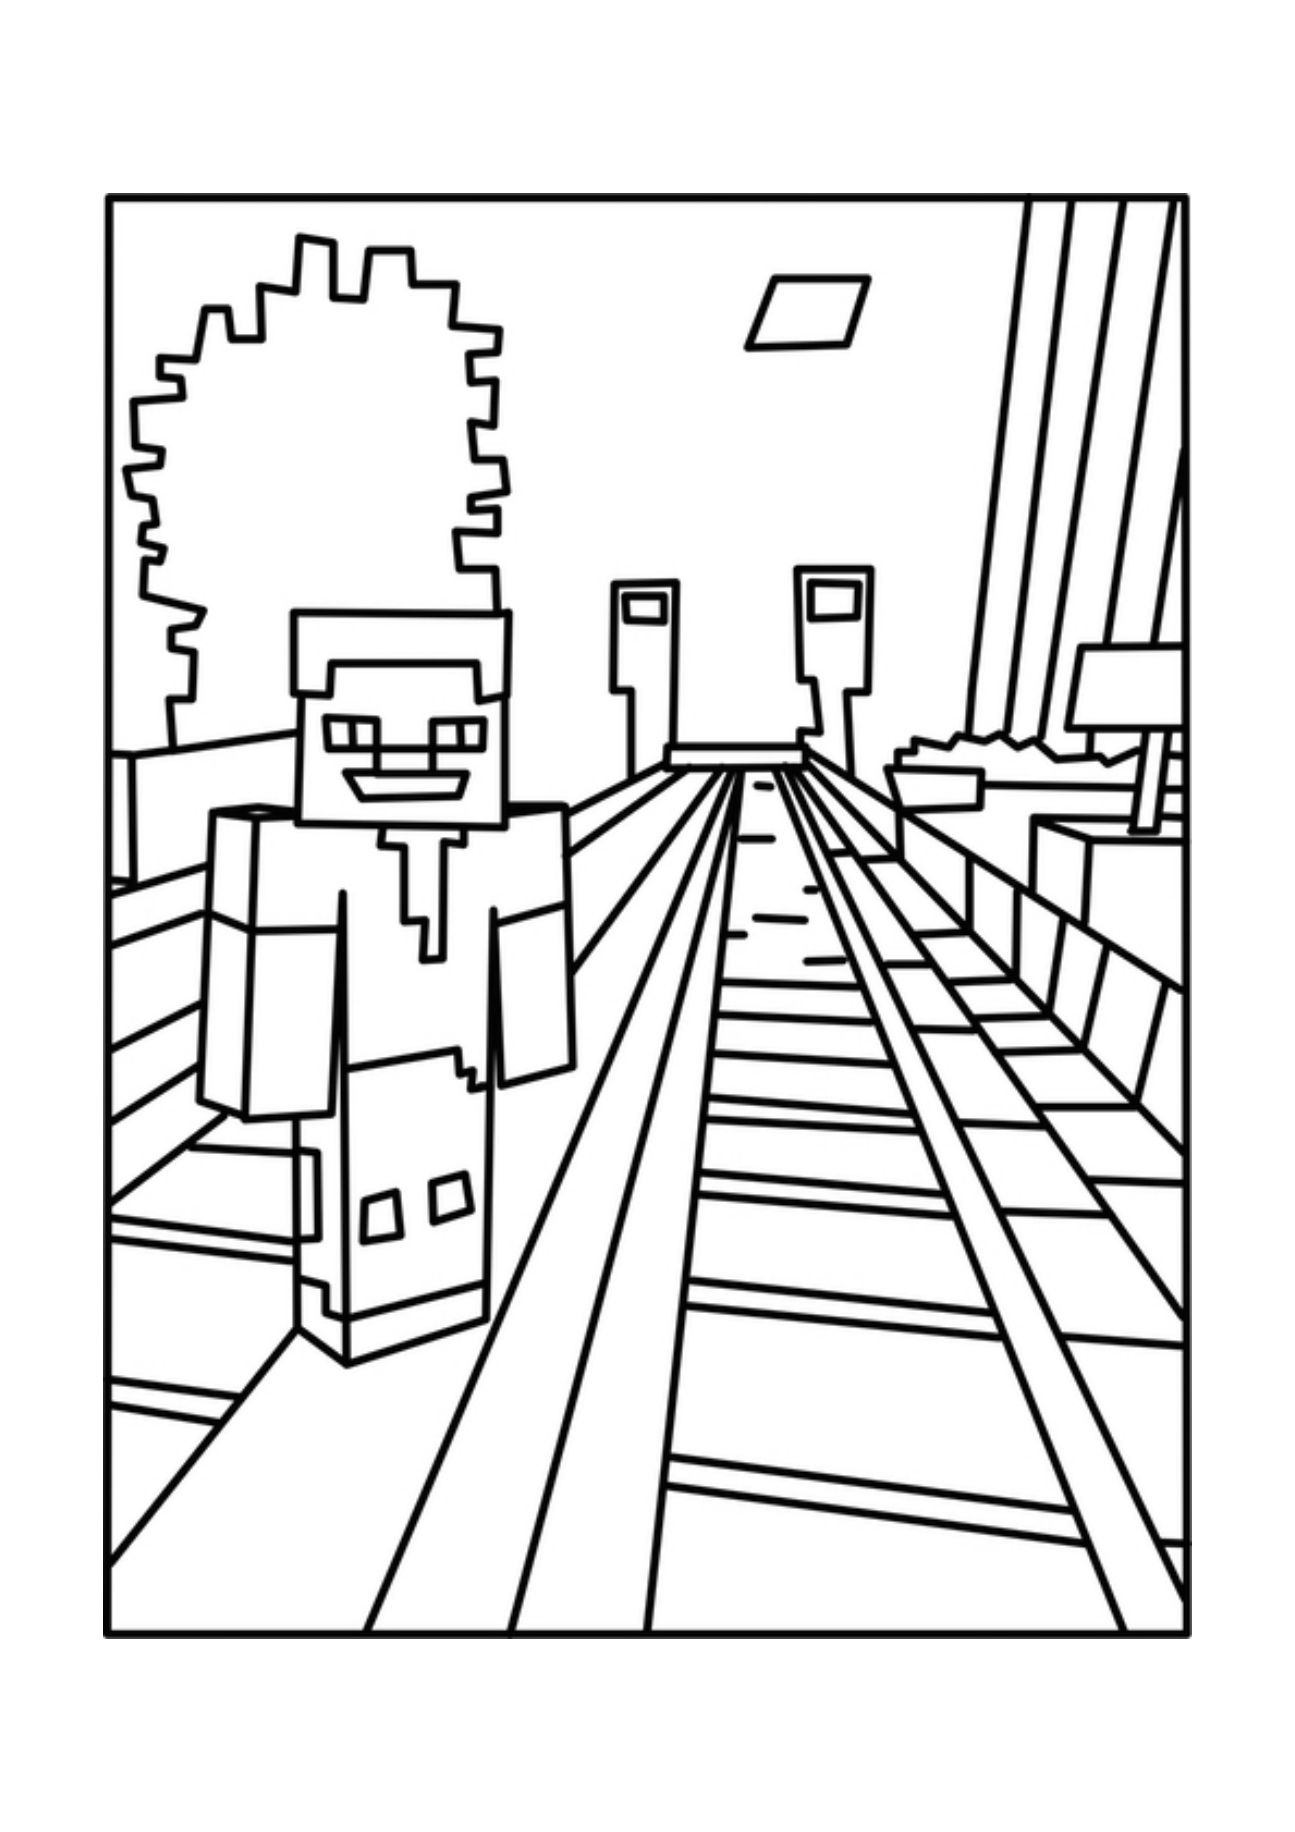 Ausmalbilder Minecraft Skins : Printable Minecraft Coloring Page New Sites For Coloring Sheets